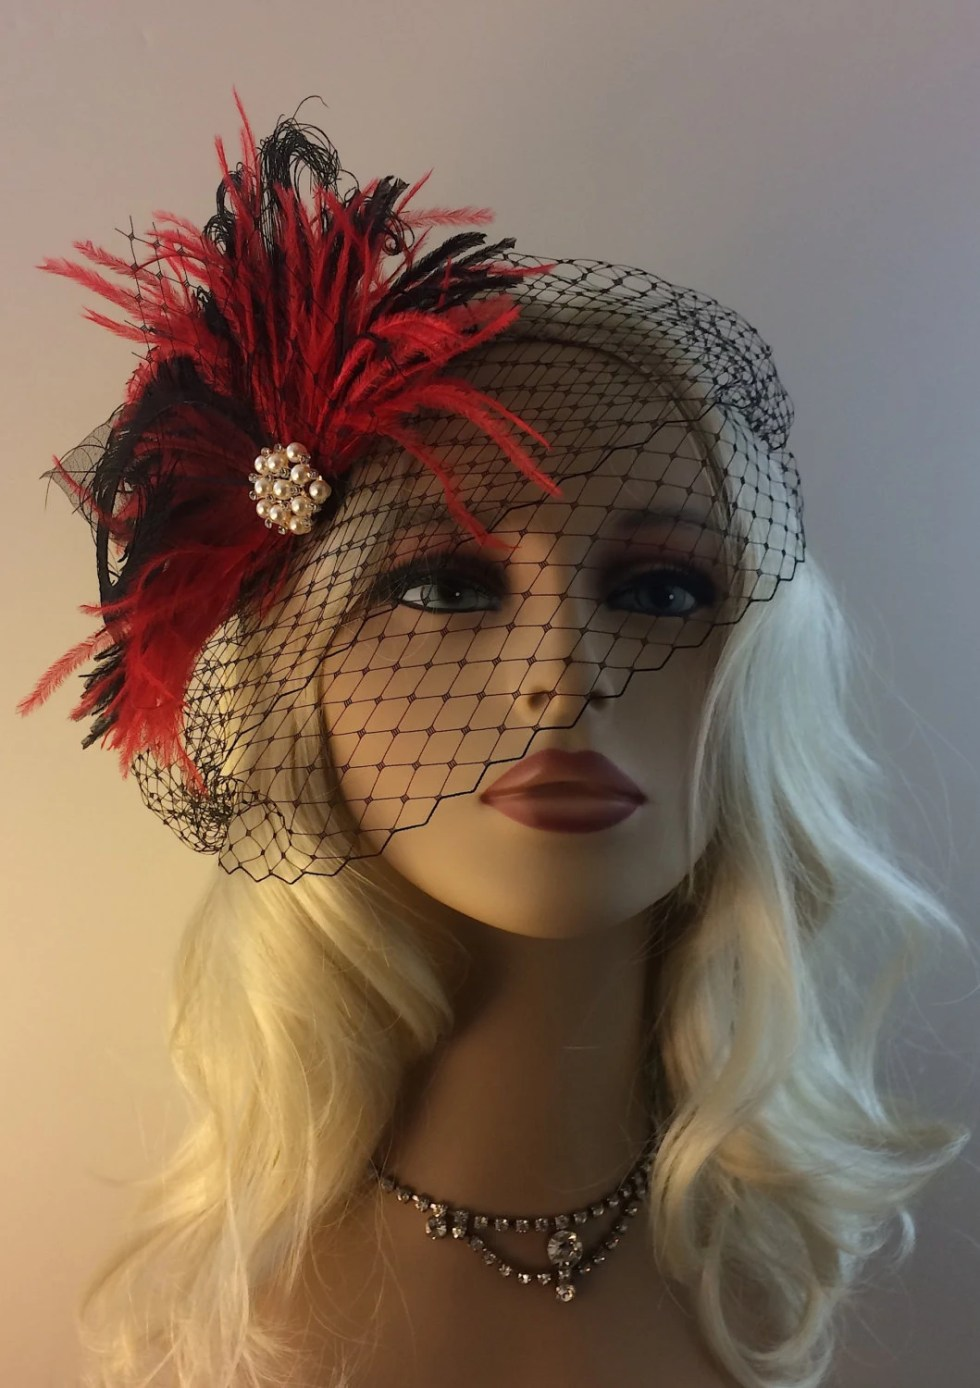 Bridal Hair Clip, Bridal Feather Fascinator, Bridal Headpiece, Wedding Veil, Wedding Fascinator, Feather Fascinator, Black and Red, Pearls